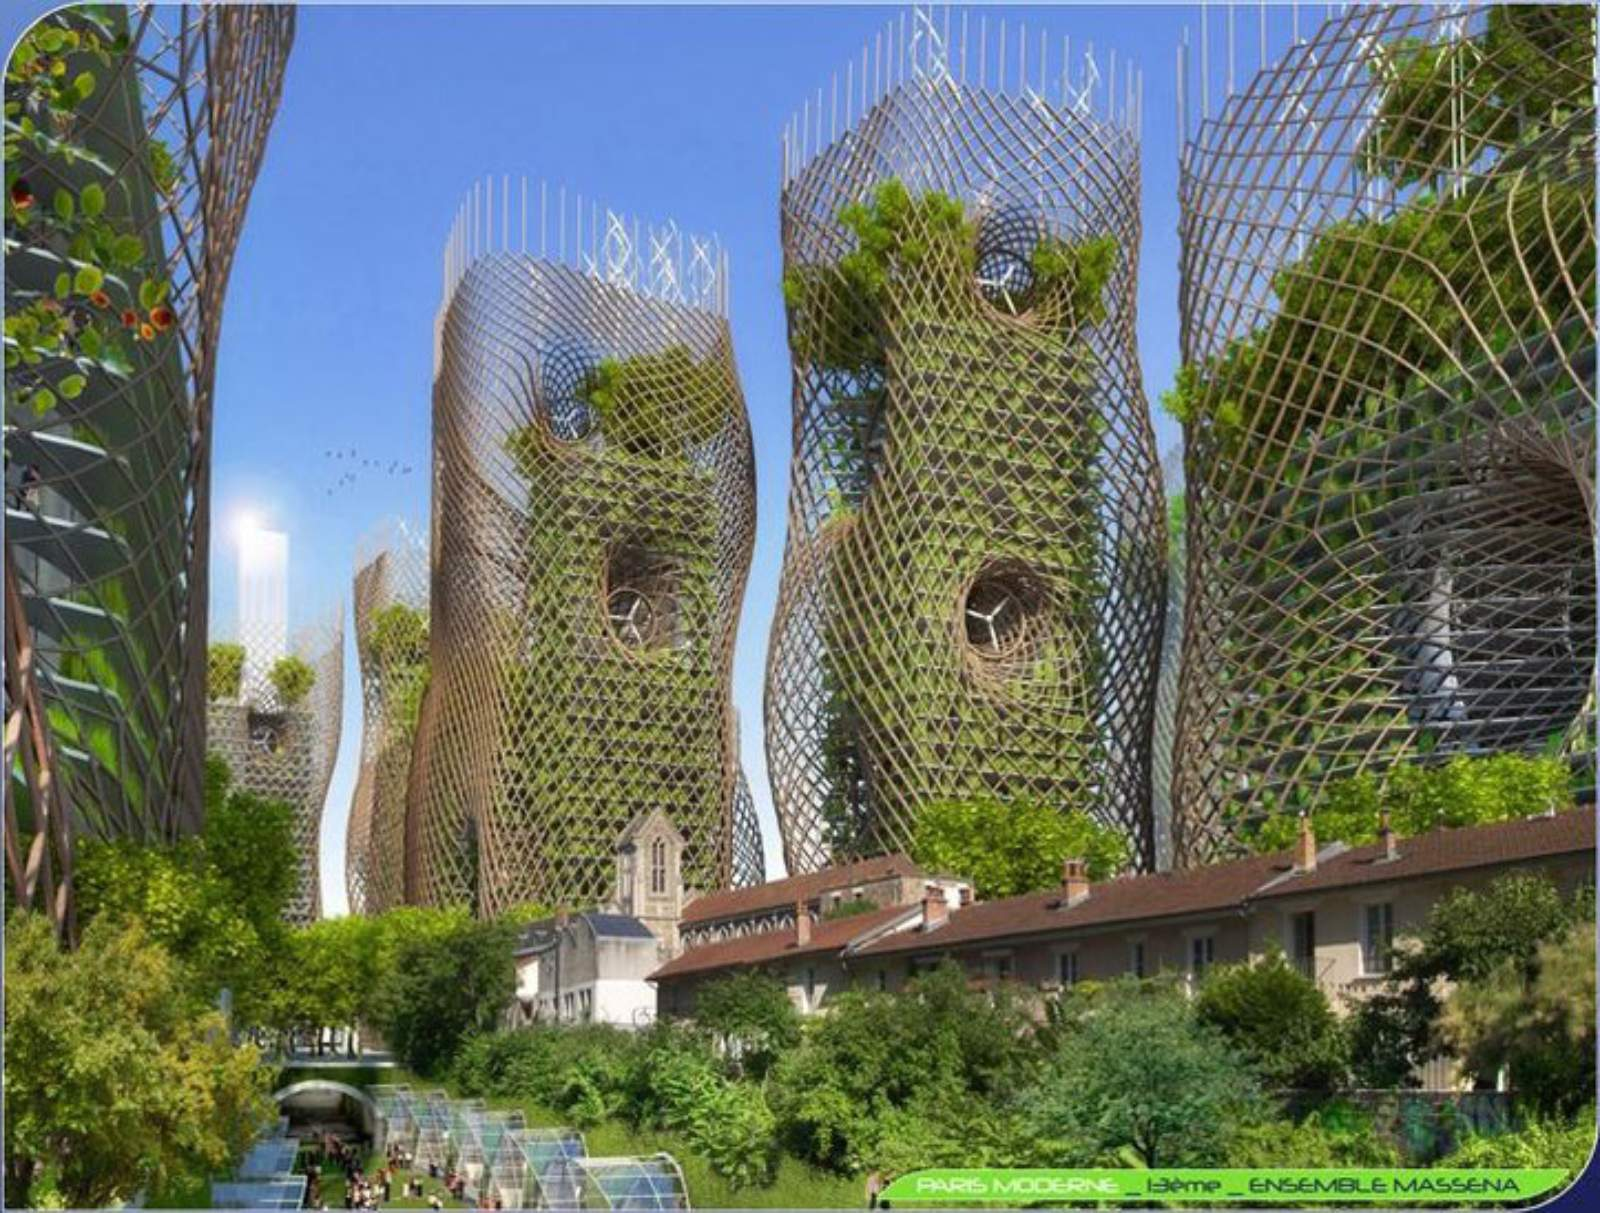 ... 2050 by Vincent Callebaut ArchitecturesFull resolution (1600 × 1213)